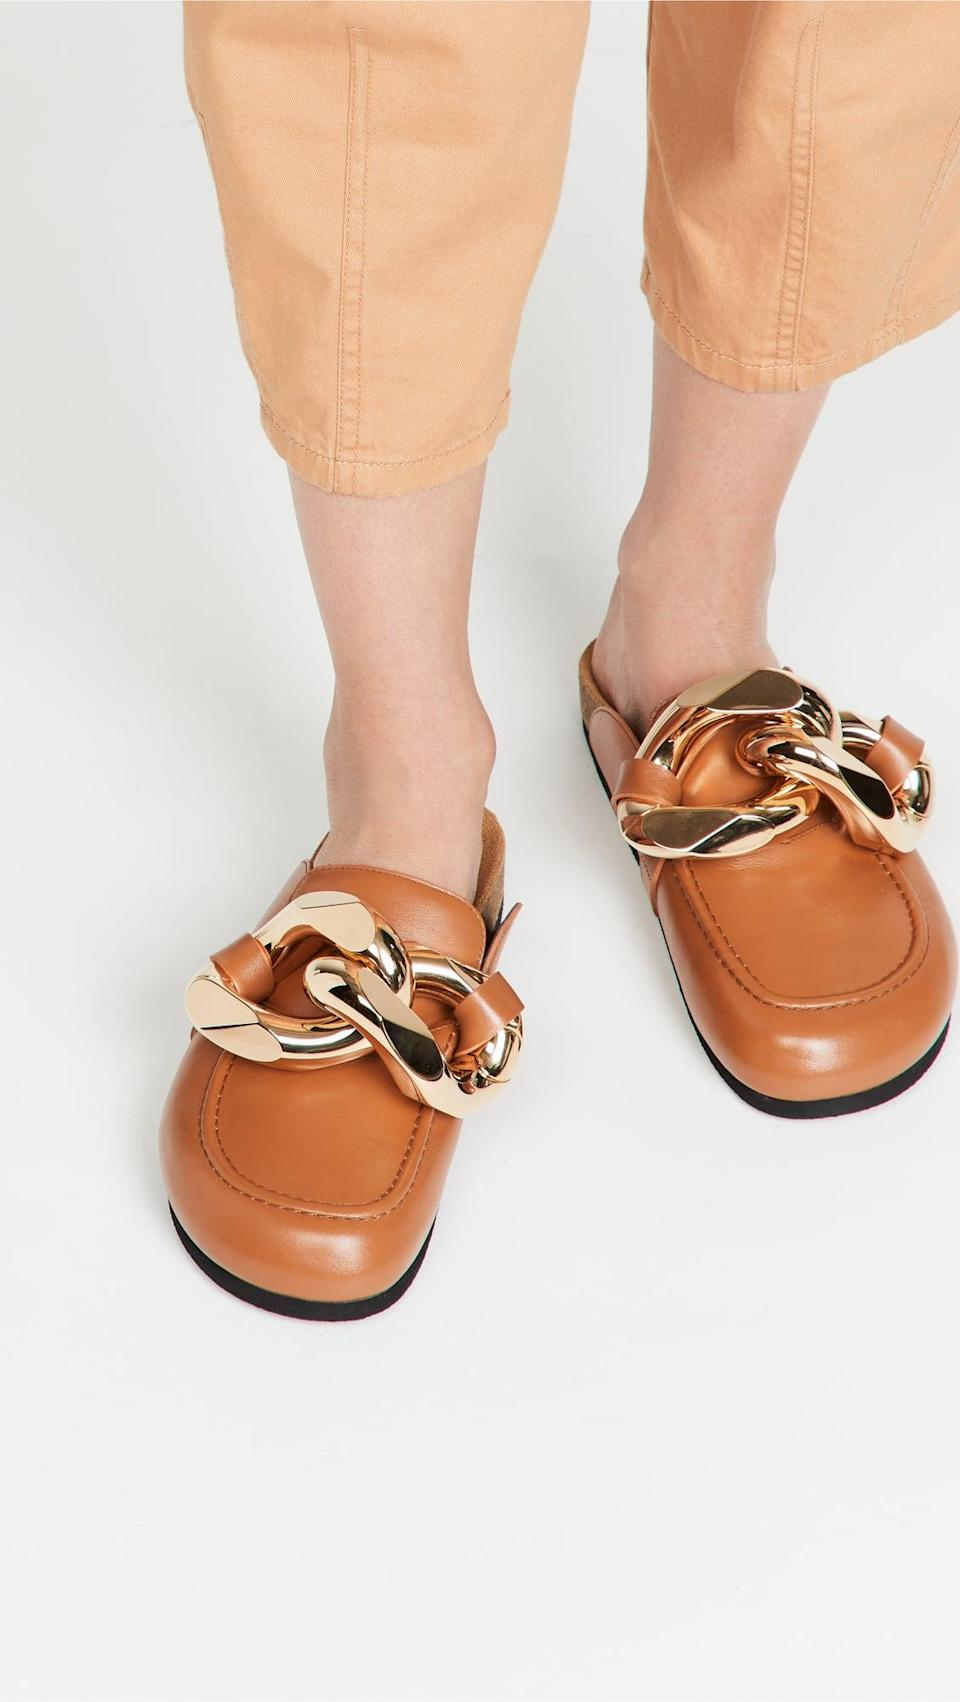 <p>These <span>JW Anderson Chain Loafers</span> ($645) are dramatic in the best possible way. The gold buckle detail adds an unexpected touch of polish, and makes it stand out.</p>